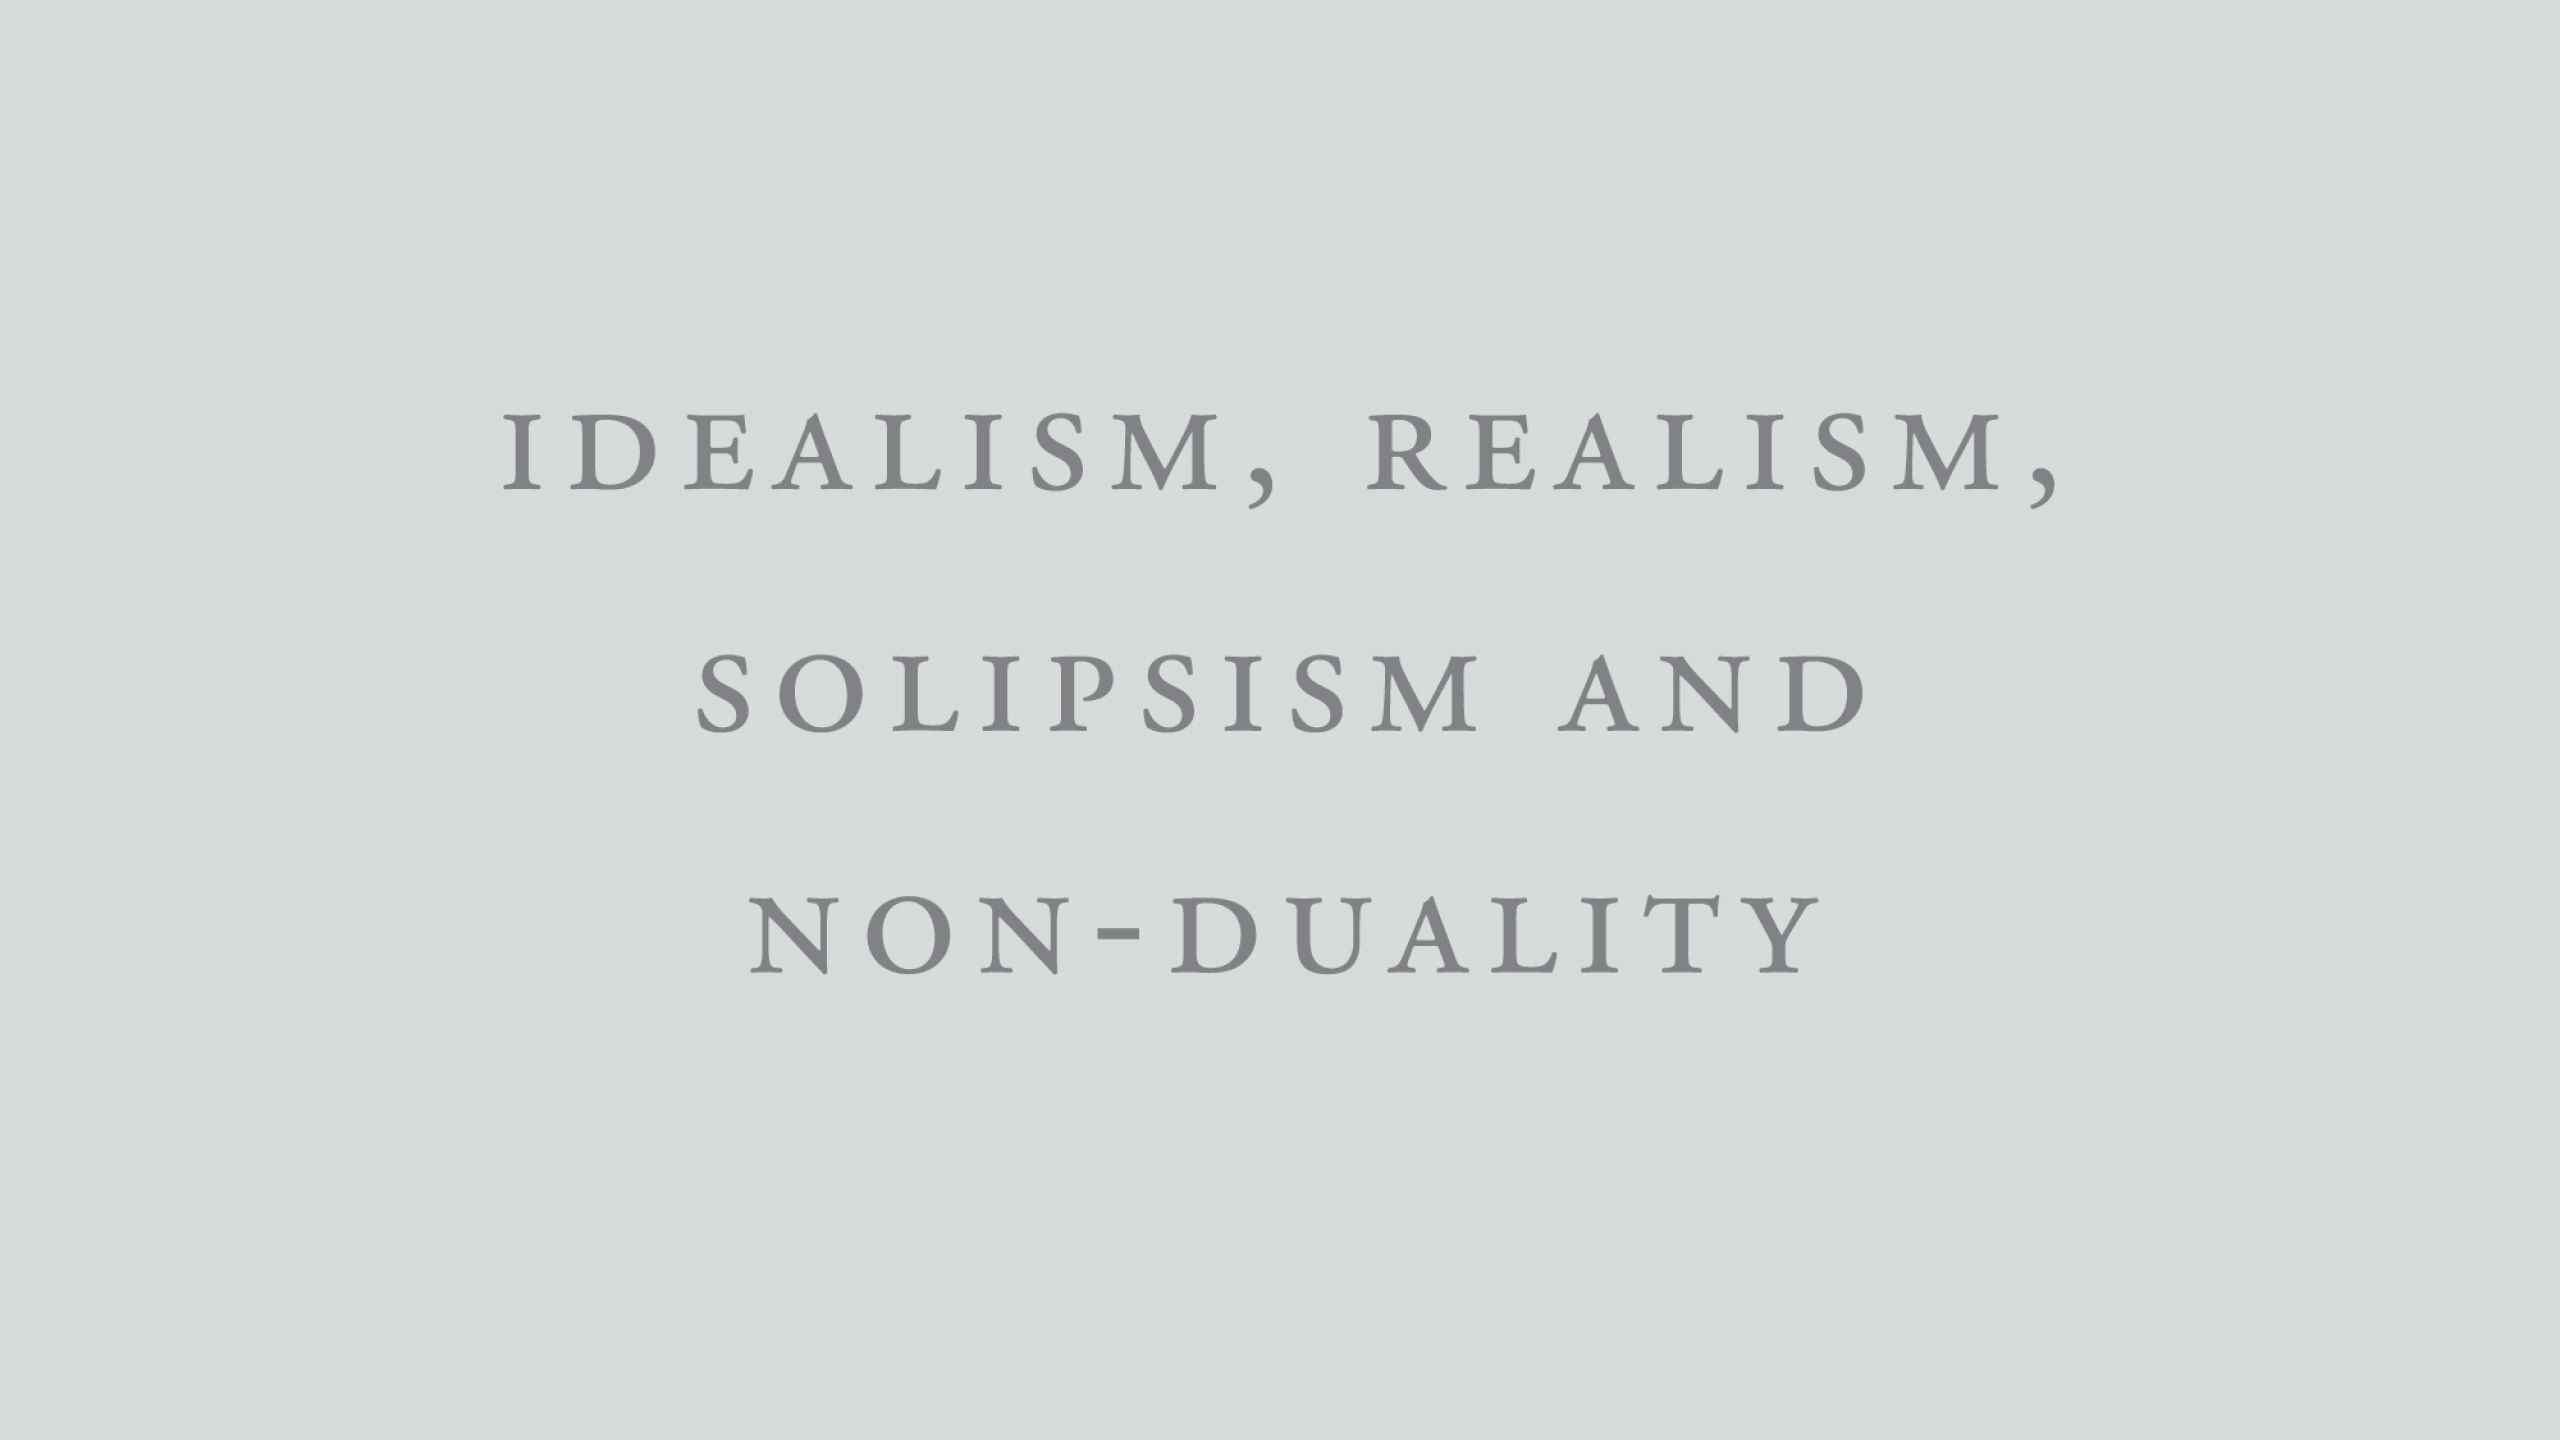 Idealism, Realism, Solipsism and Non-Duality